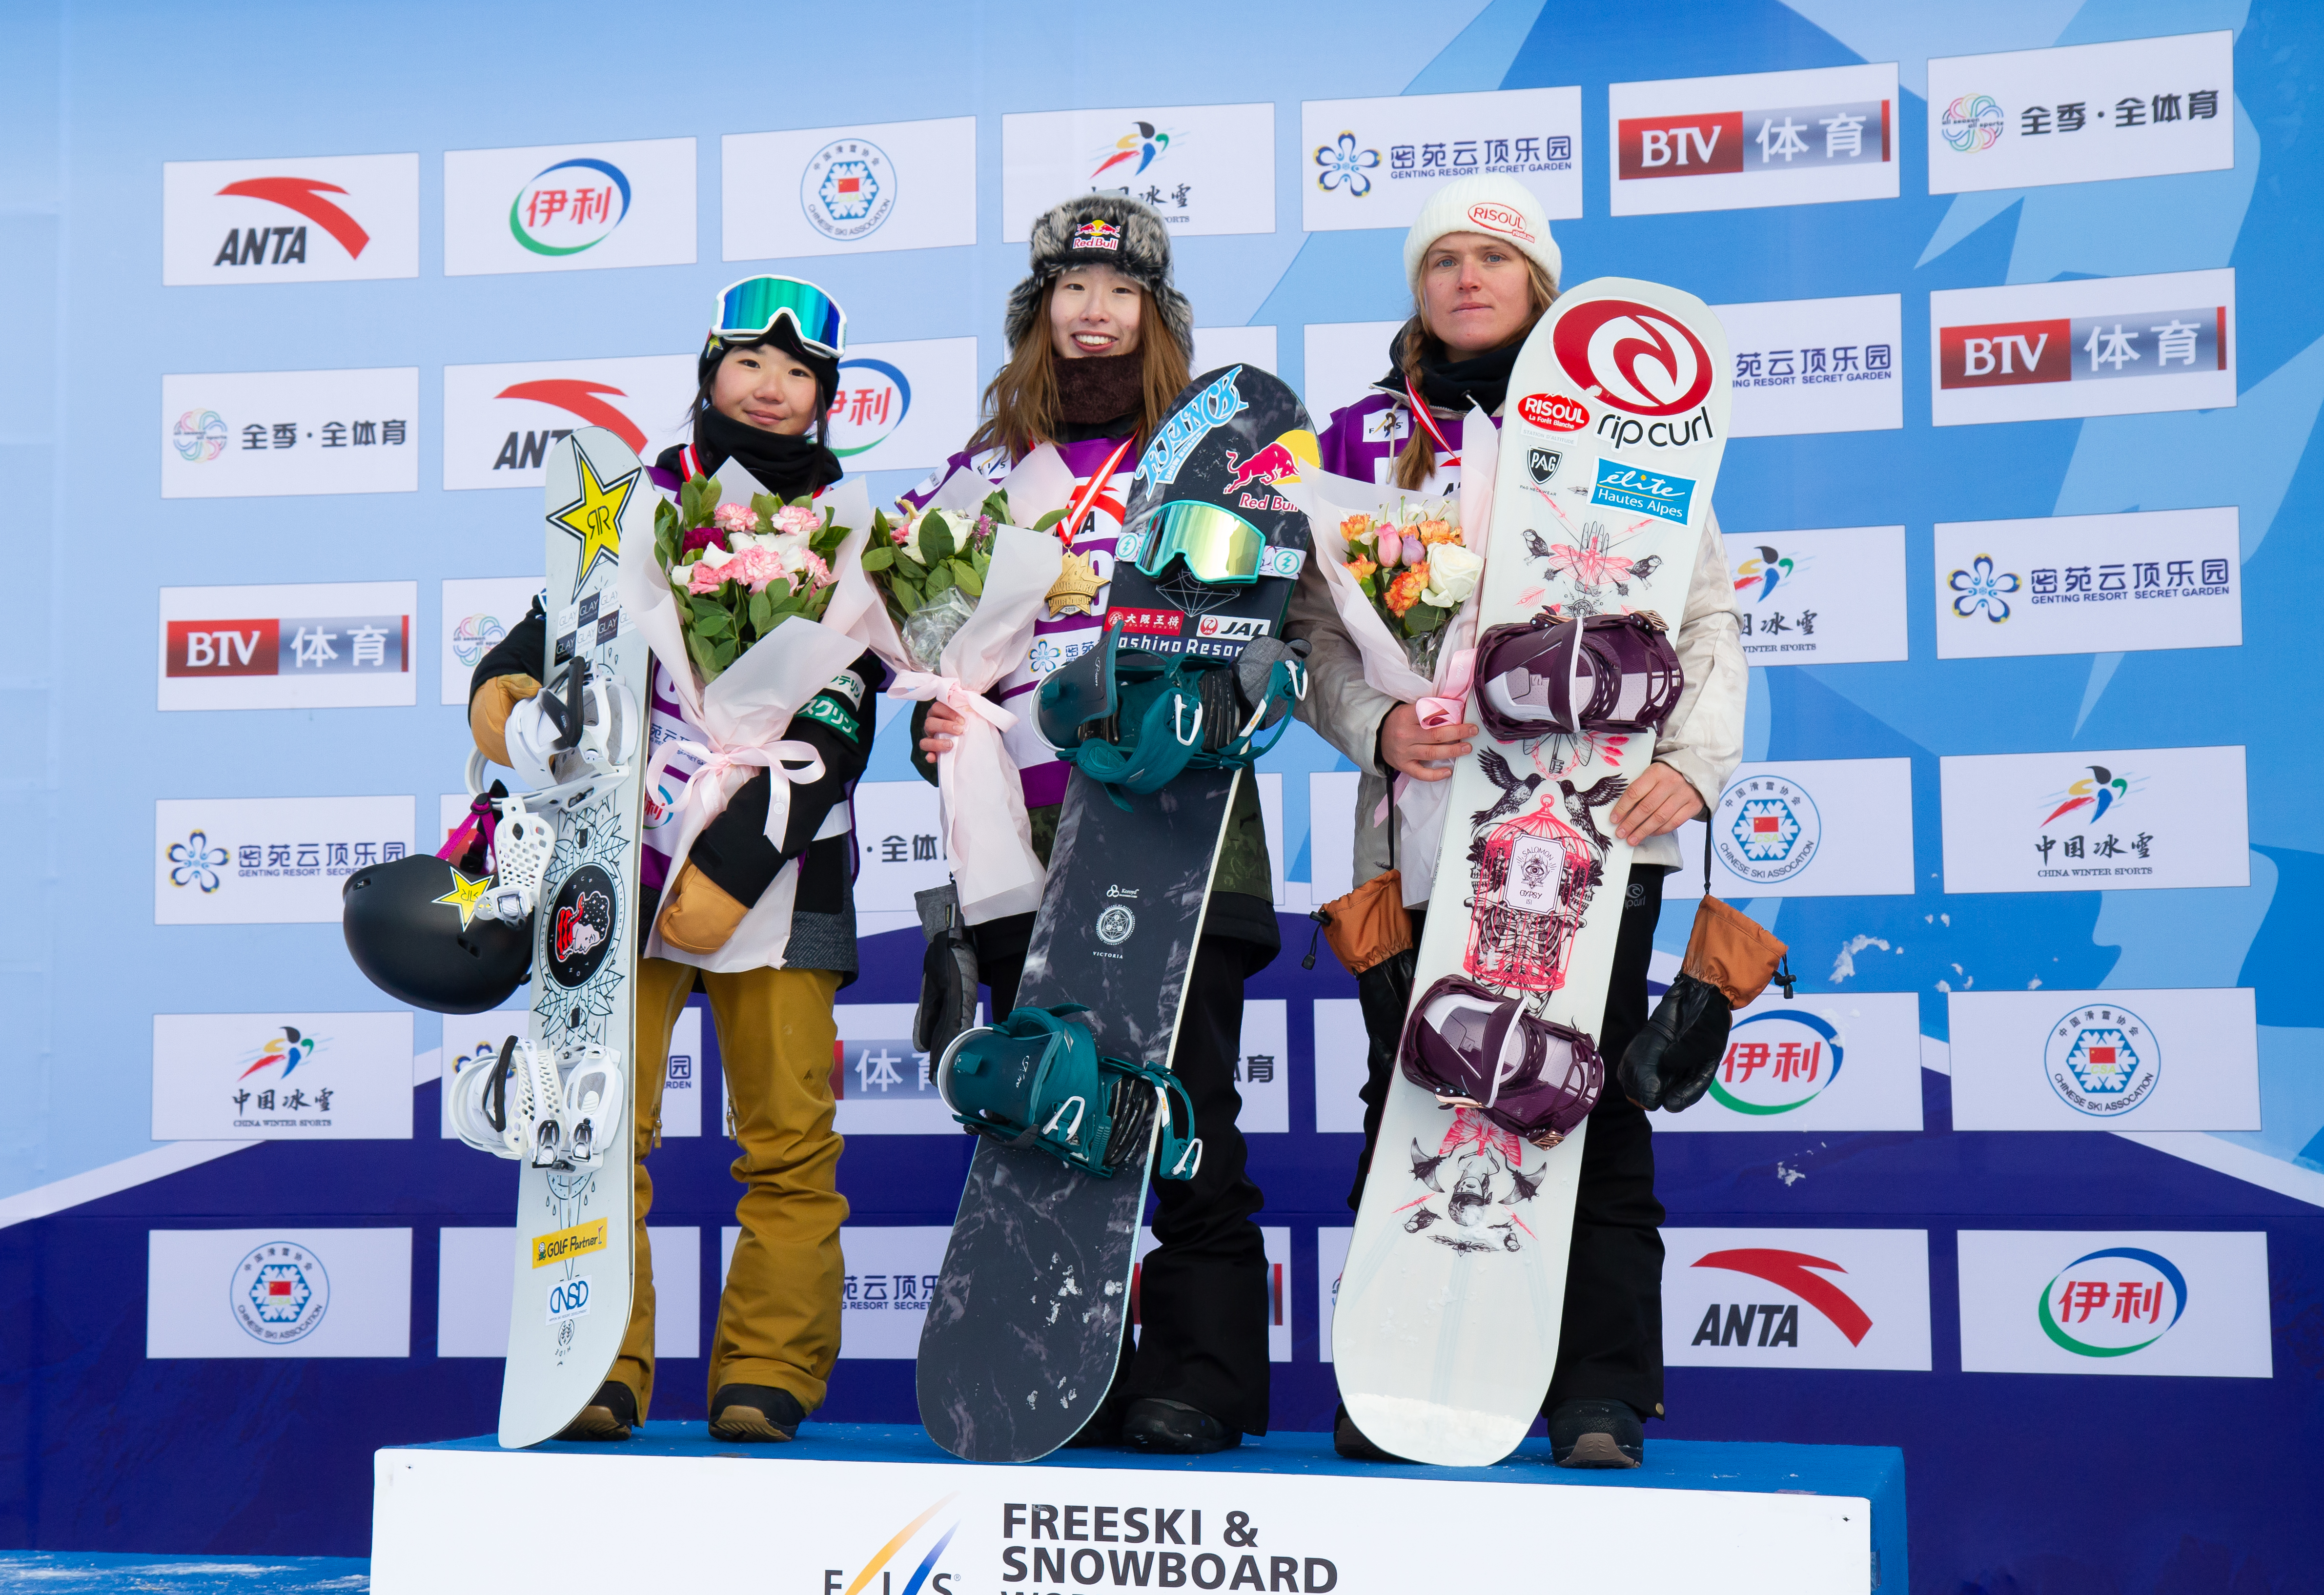 Miyabi Onitsuka and Reira Iwabuchi in 1st and 2nd place at the FIS World Cup Secret Garden slopestyle event in China.